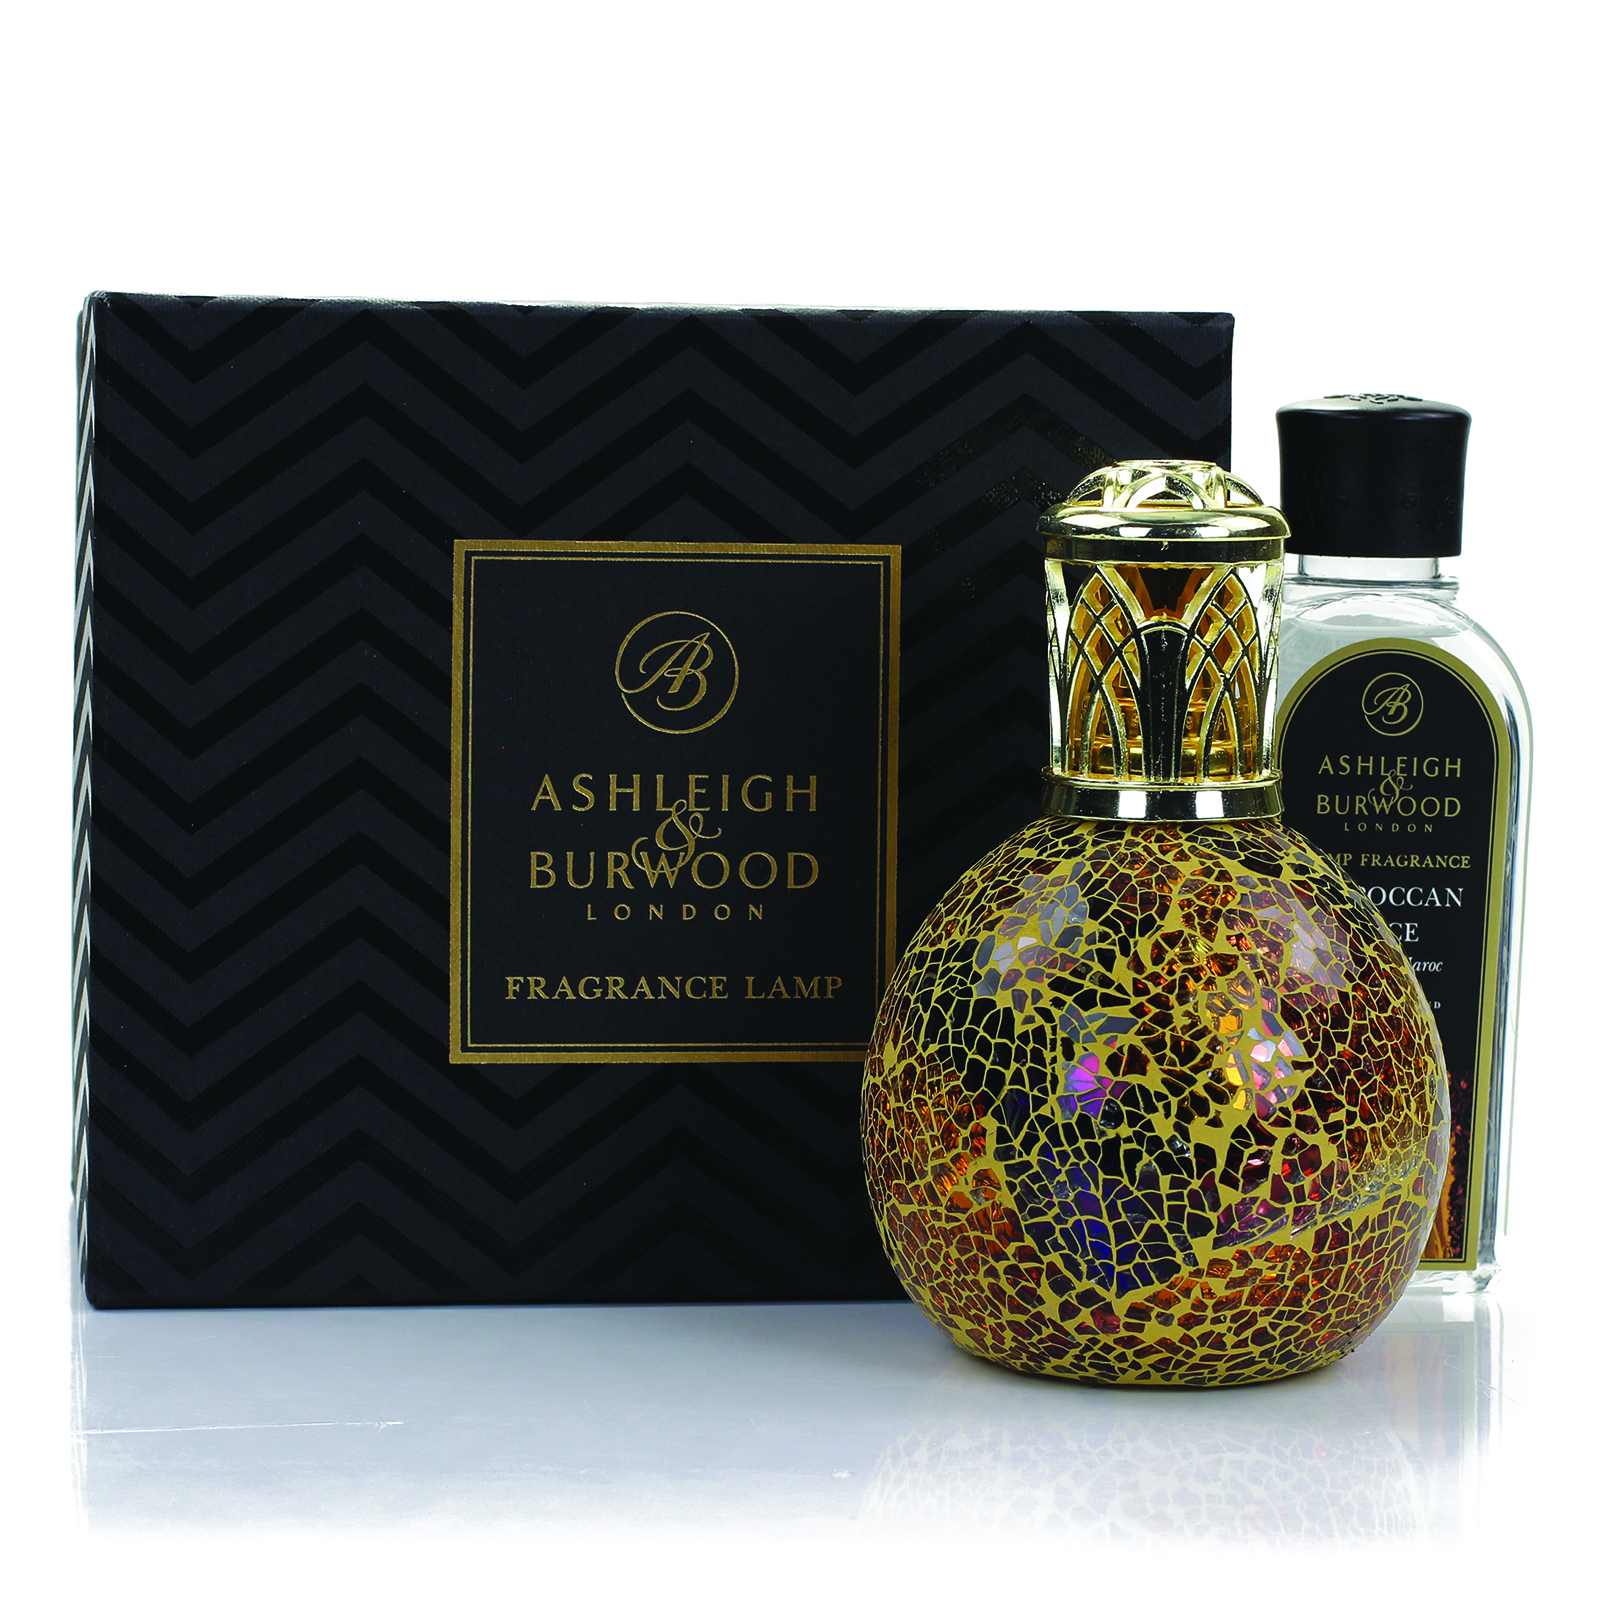 Ashleigh & Burwood: Fragrance Lamp Gift Set - Egyptian Sunset & Moroccan Spice